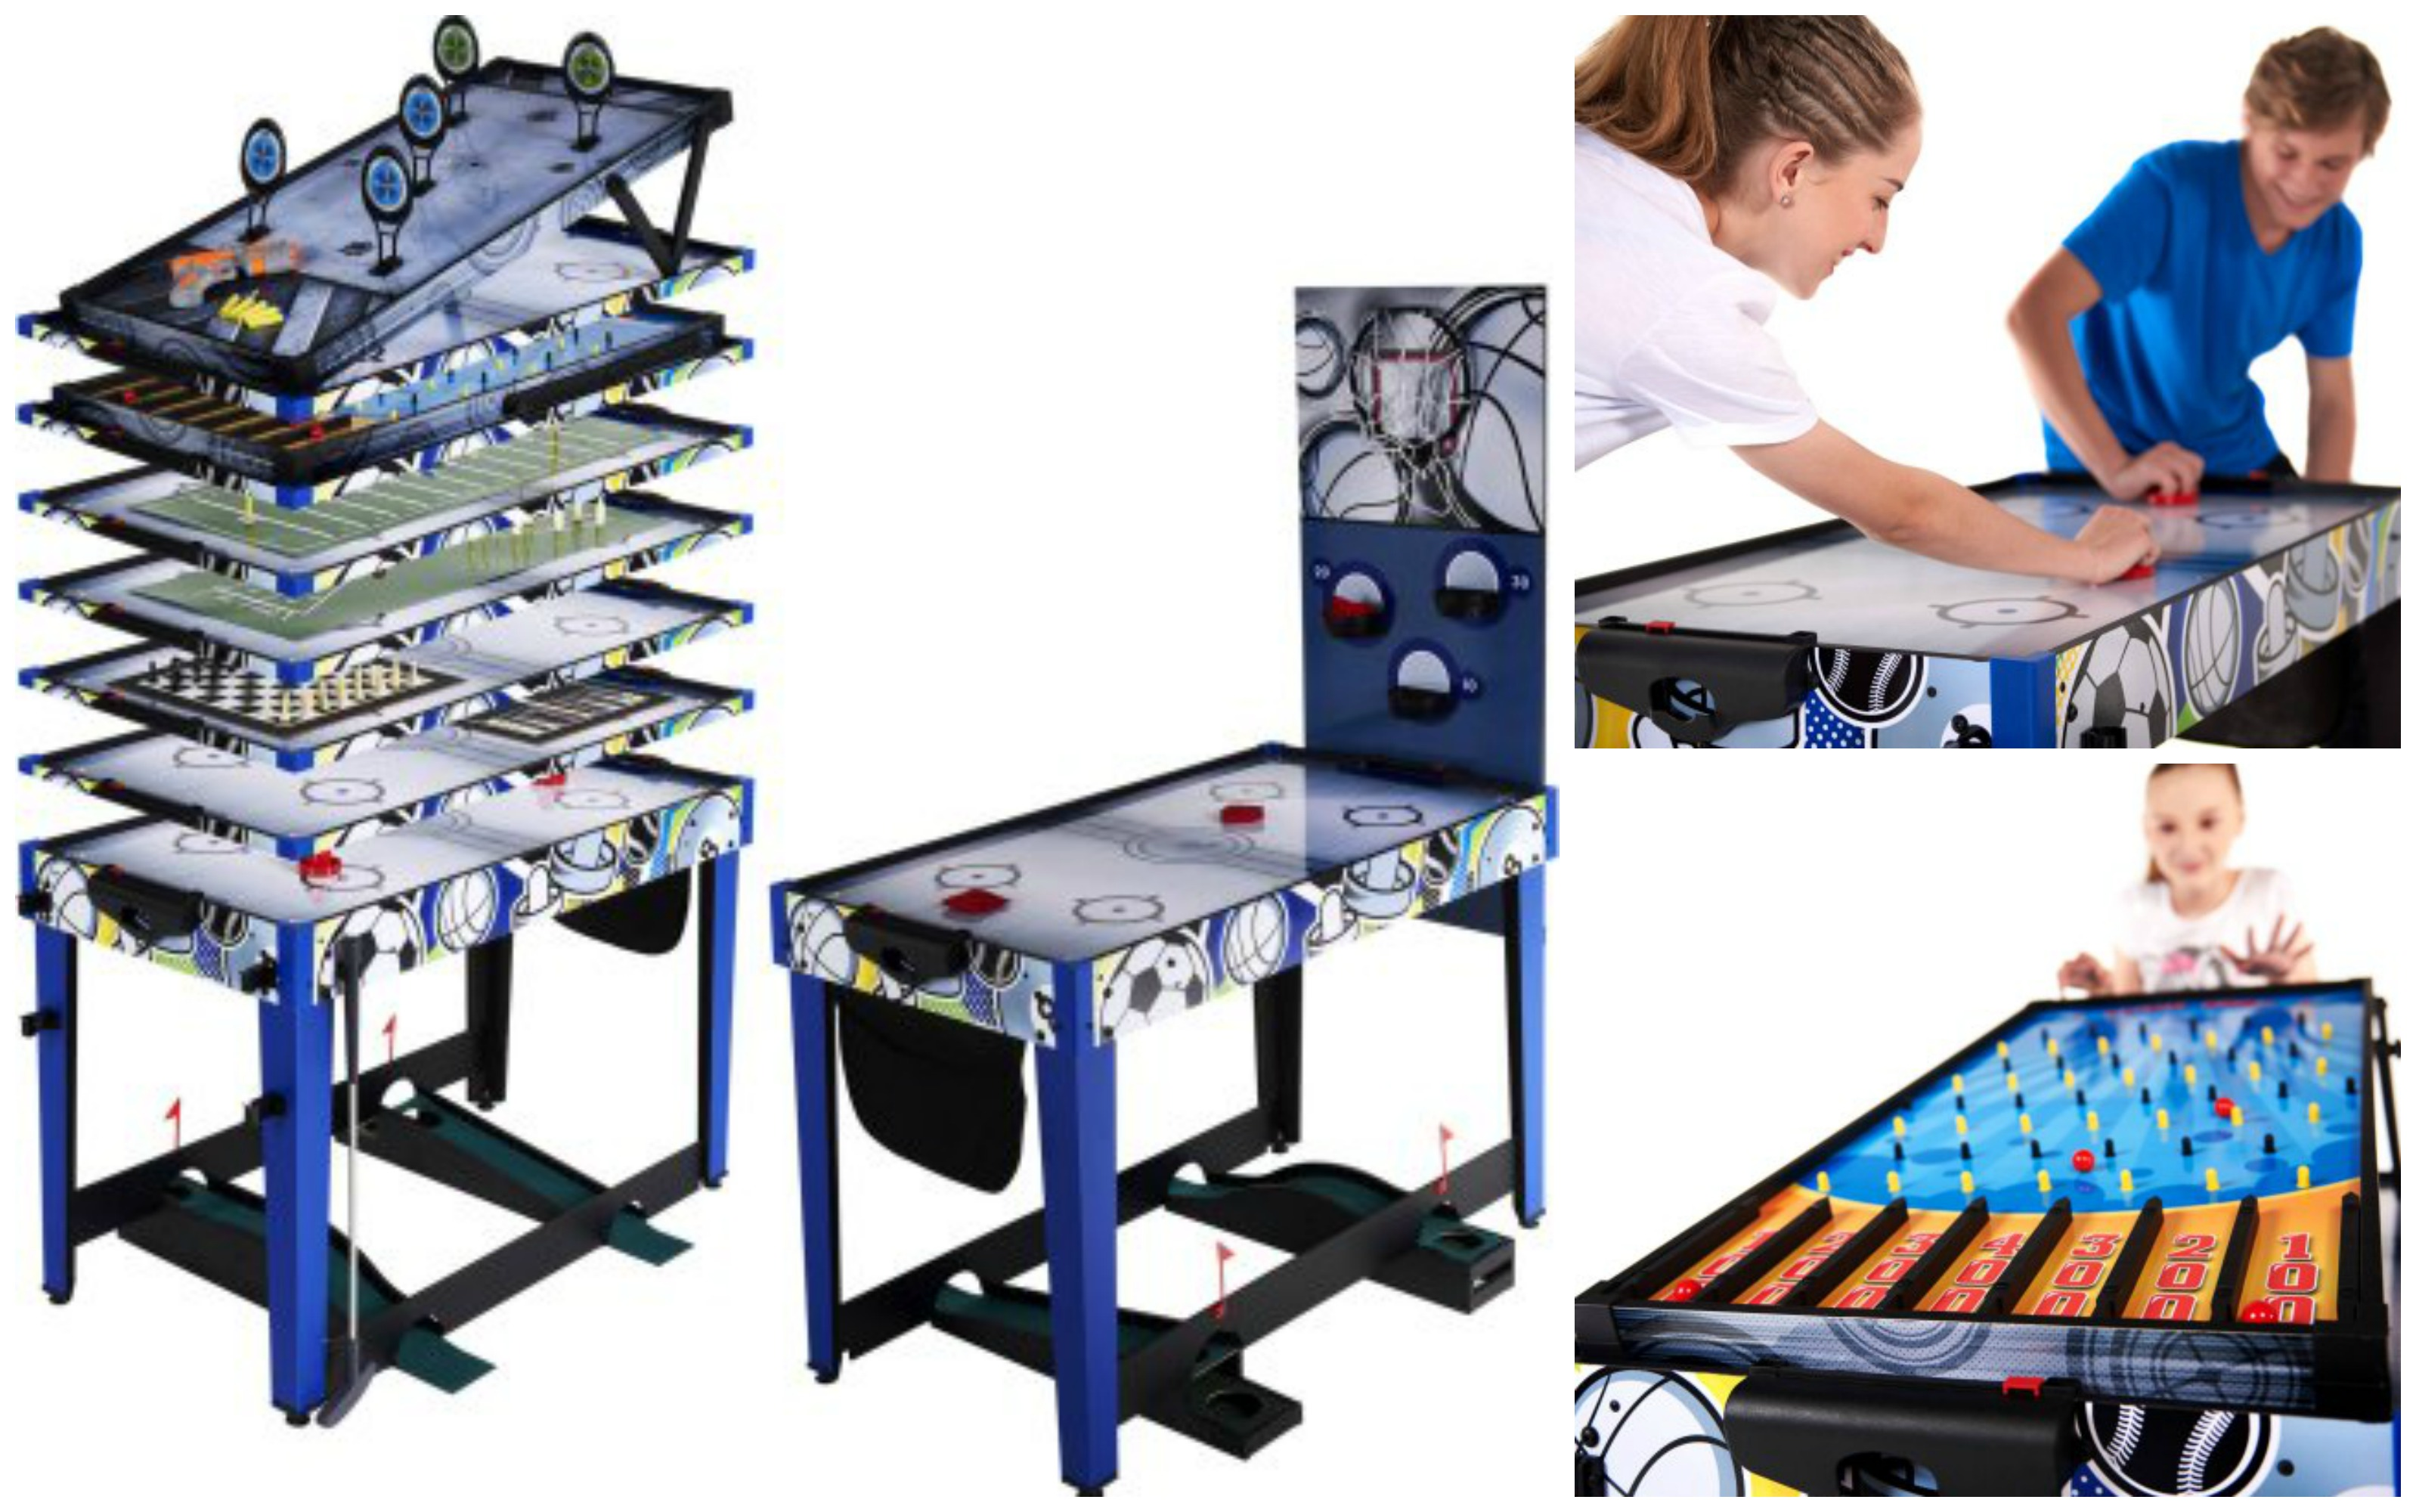 Md sports 48 inch 13 in 1 game table only 55 reg for 13 in 1 game table